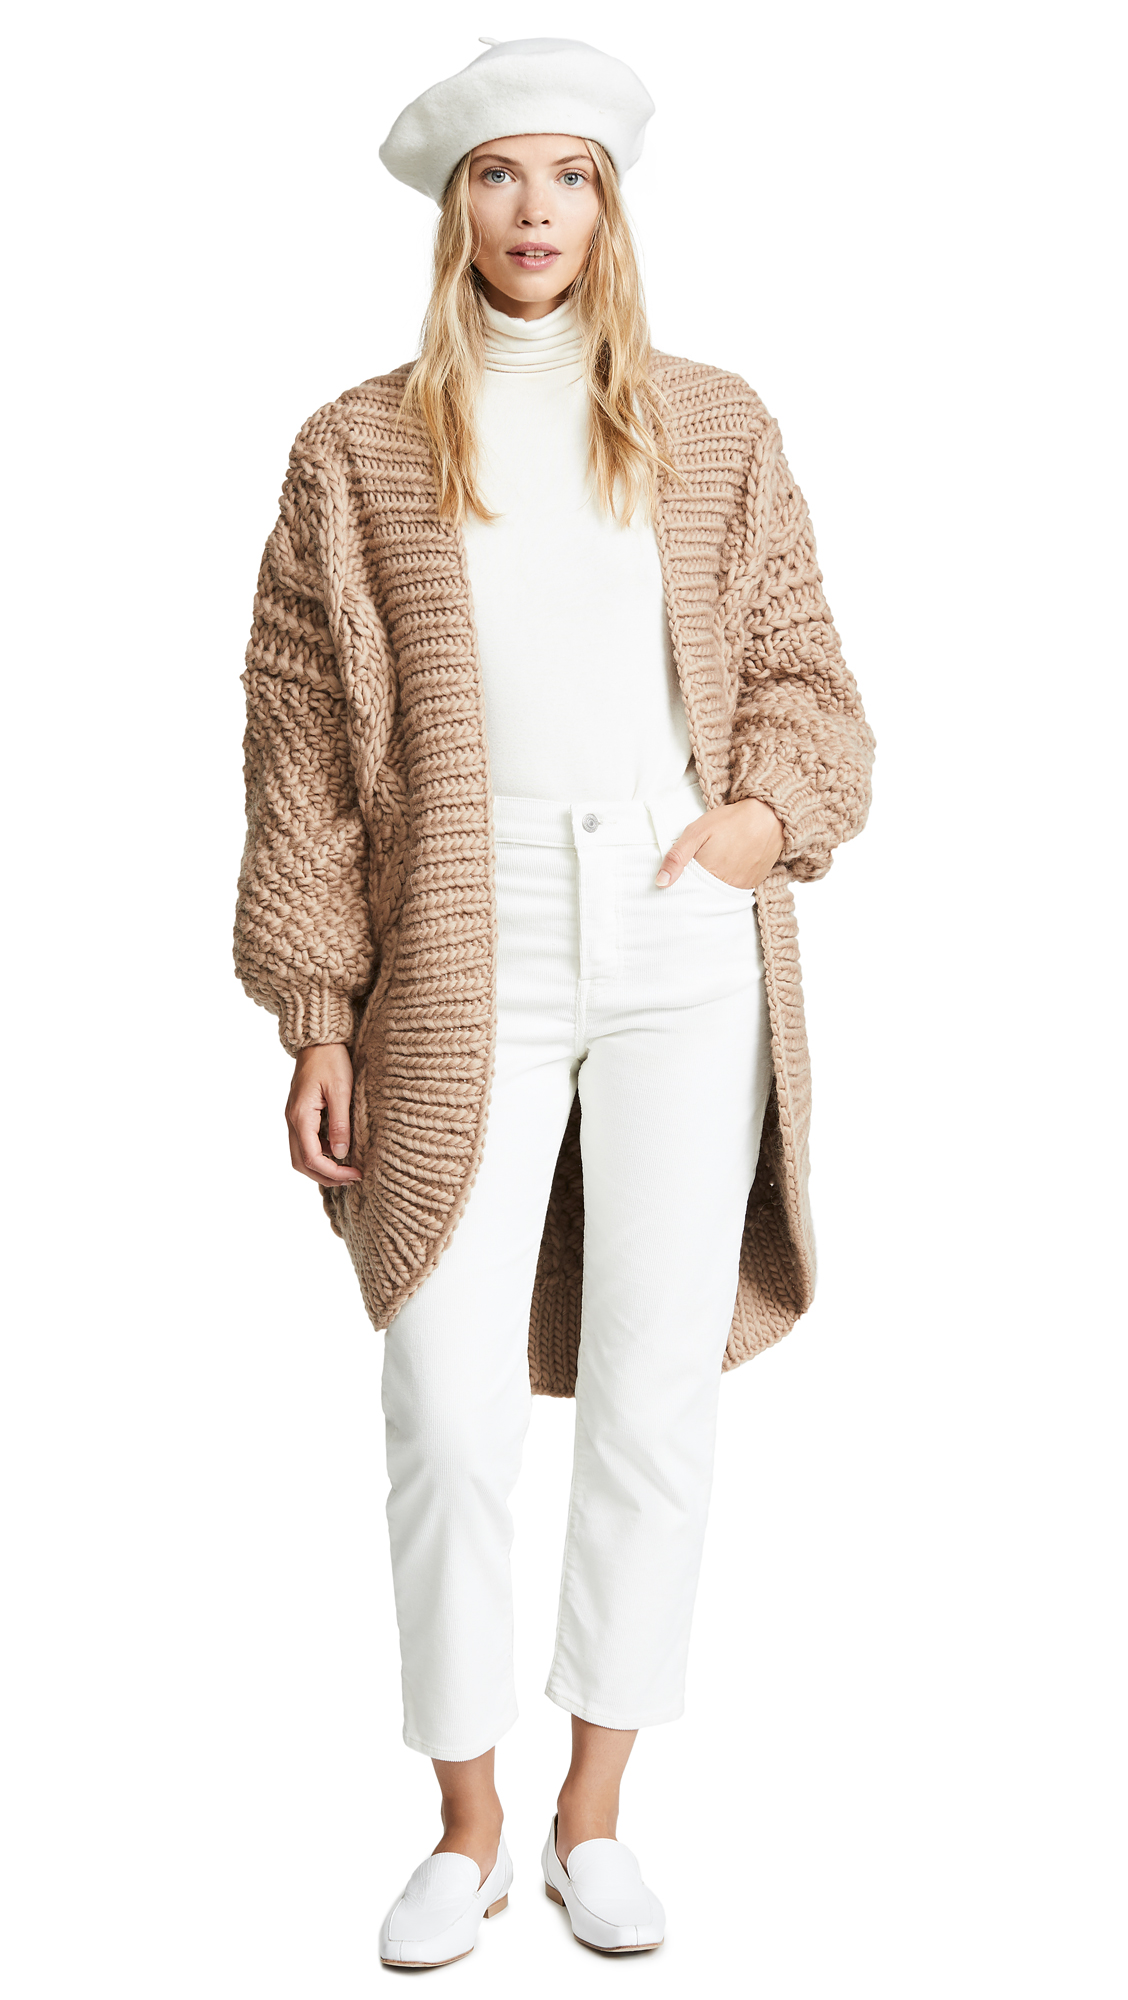 I LOVE MR. MITTENS Aran Cardigan in Taupe